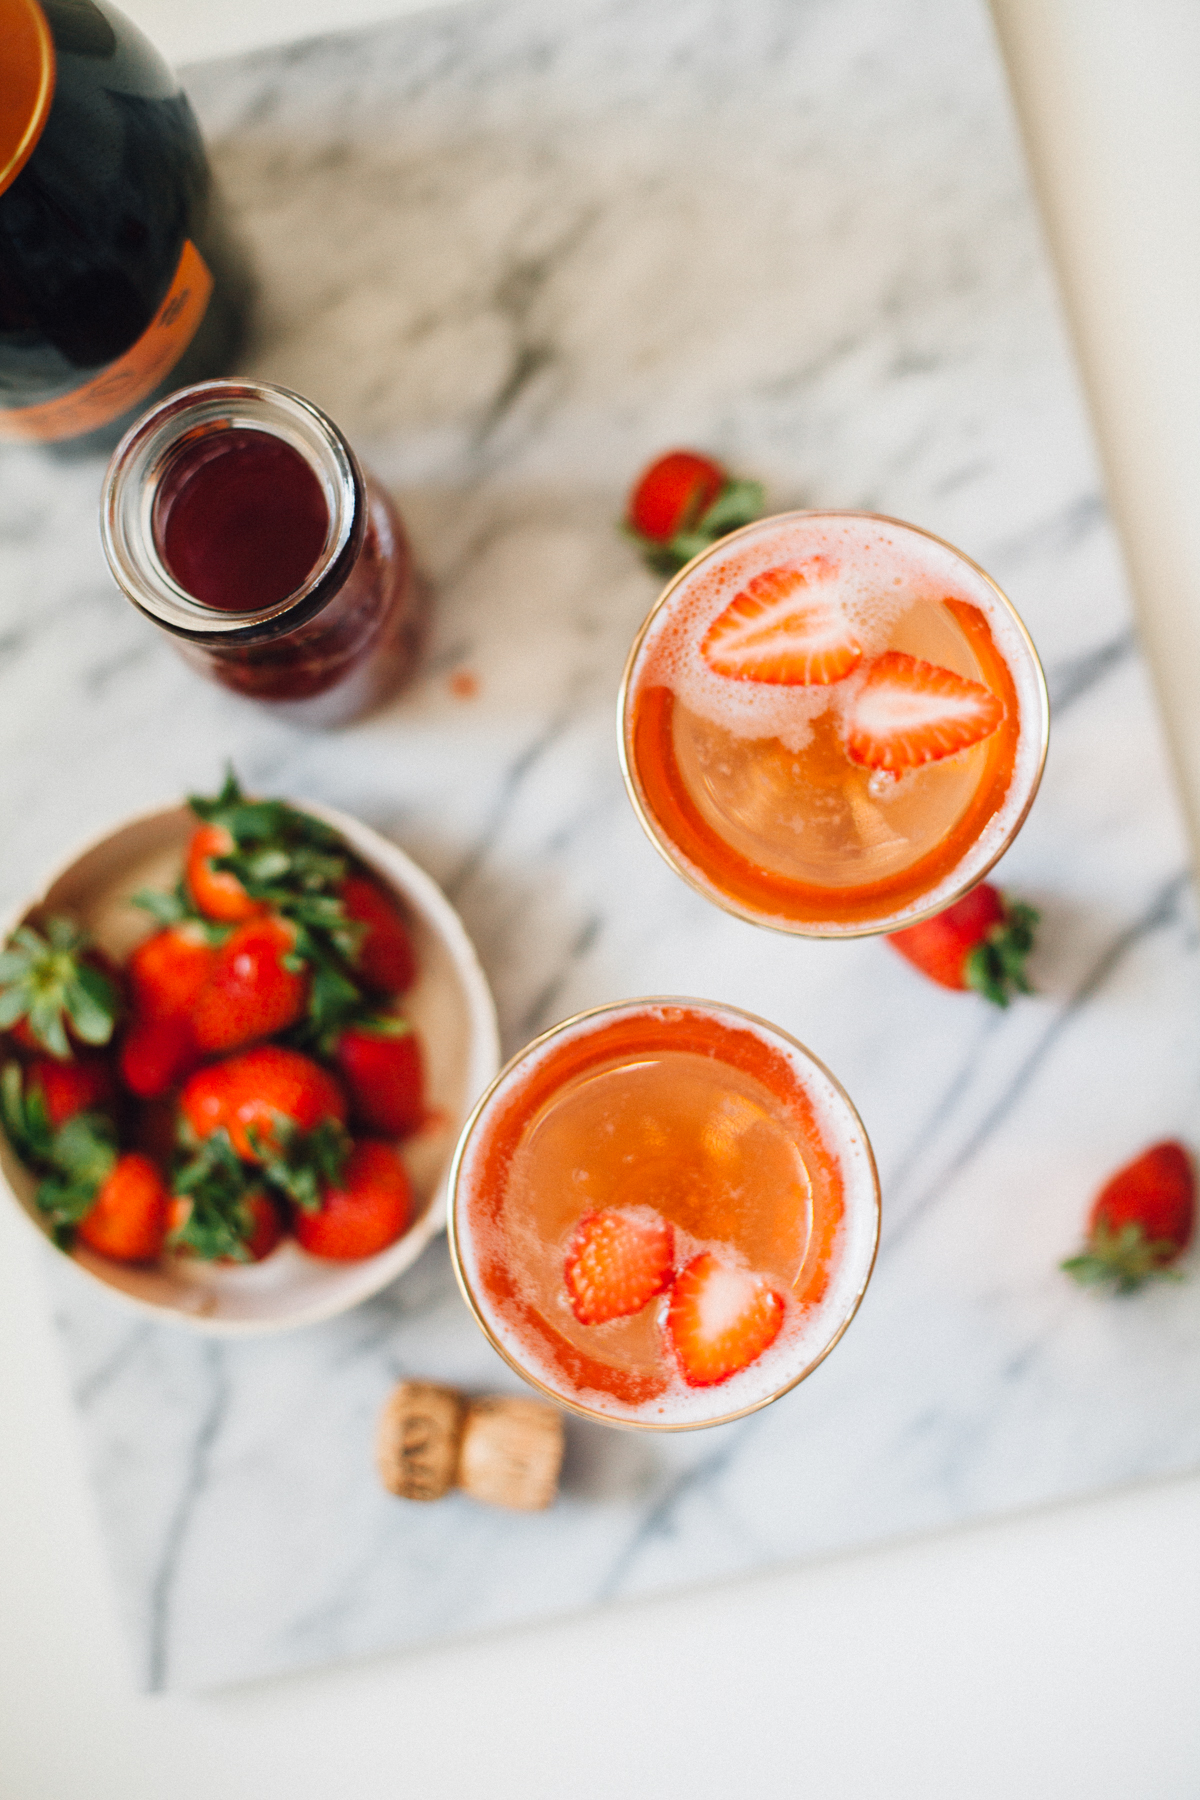 Fresh Strawberry Jus Sparkling Cocktails | Alyssa & Carla